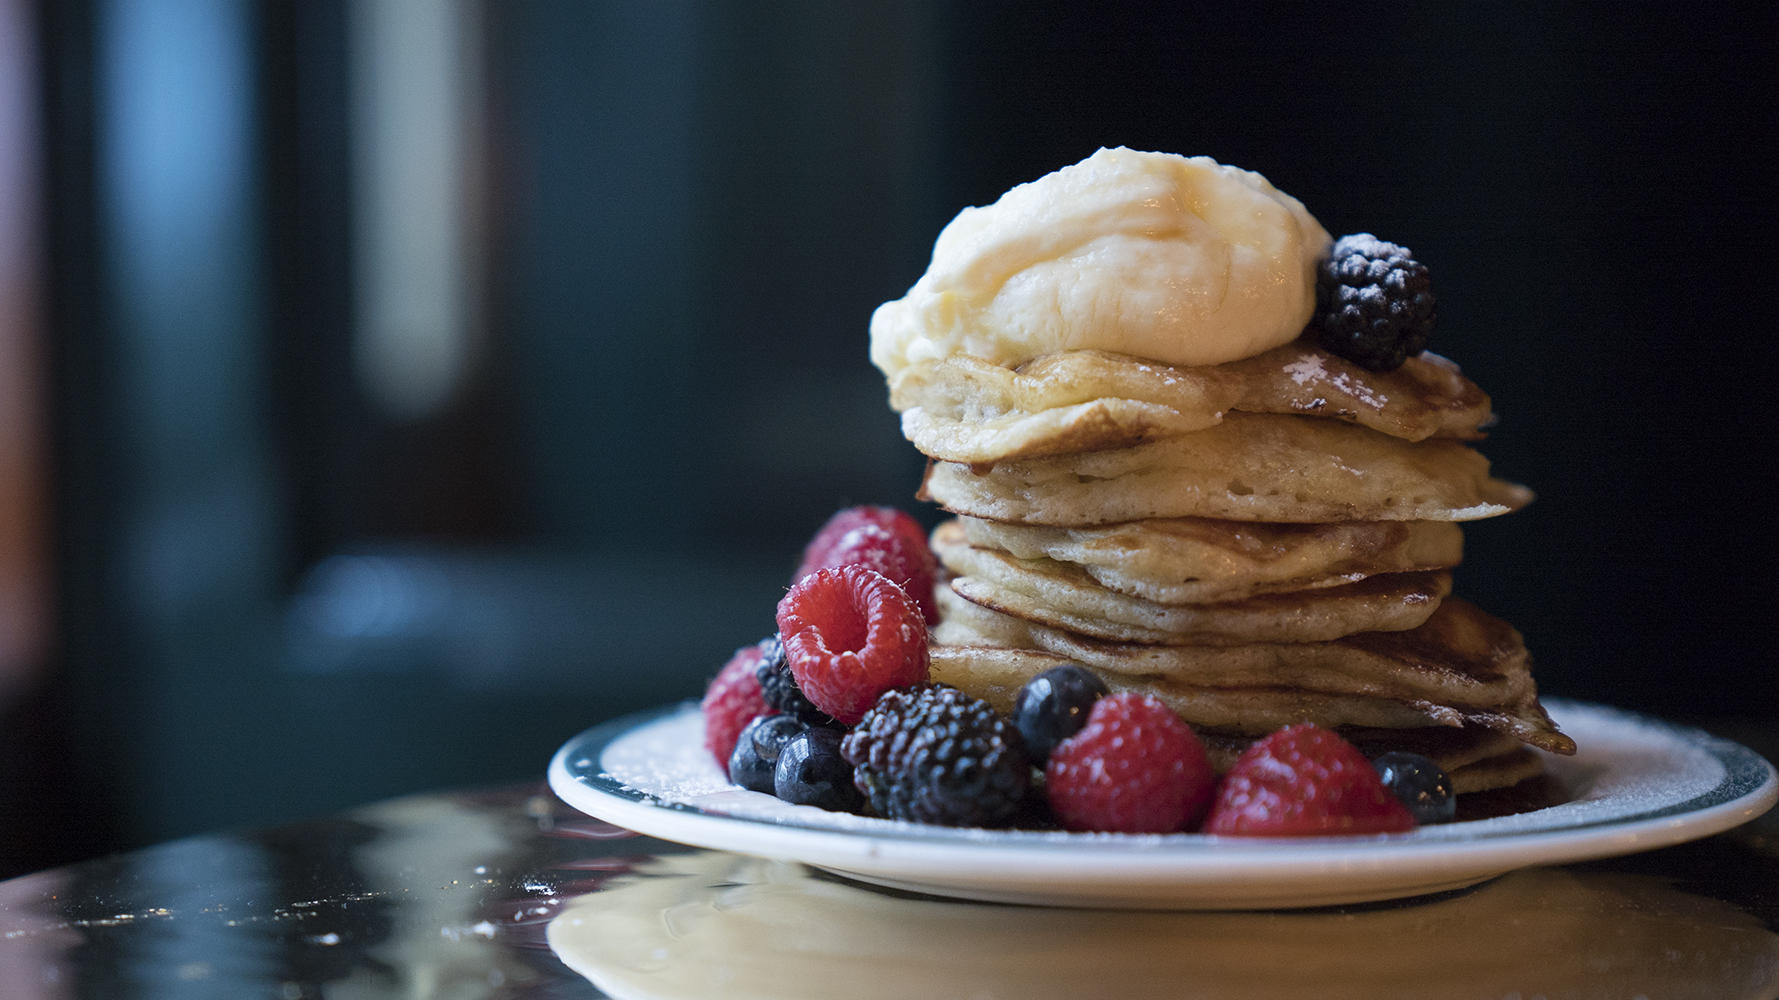 Where to find the best Easter brunch in NYC